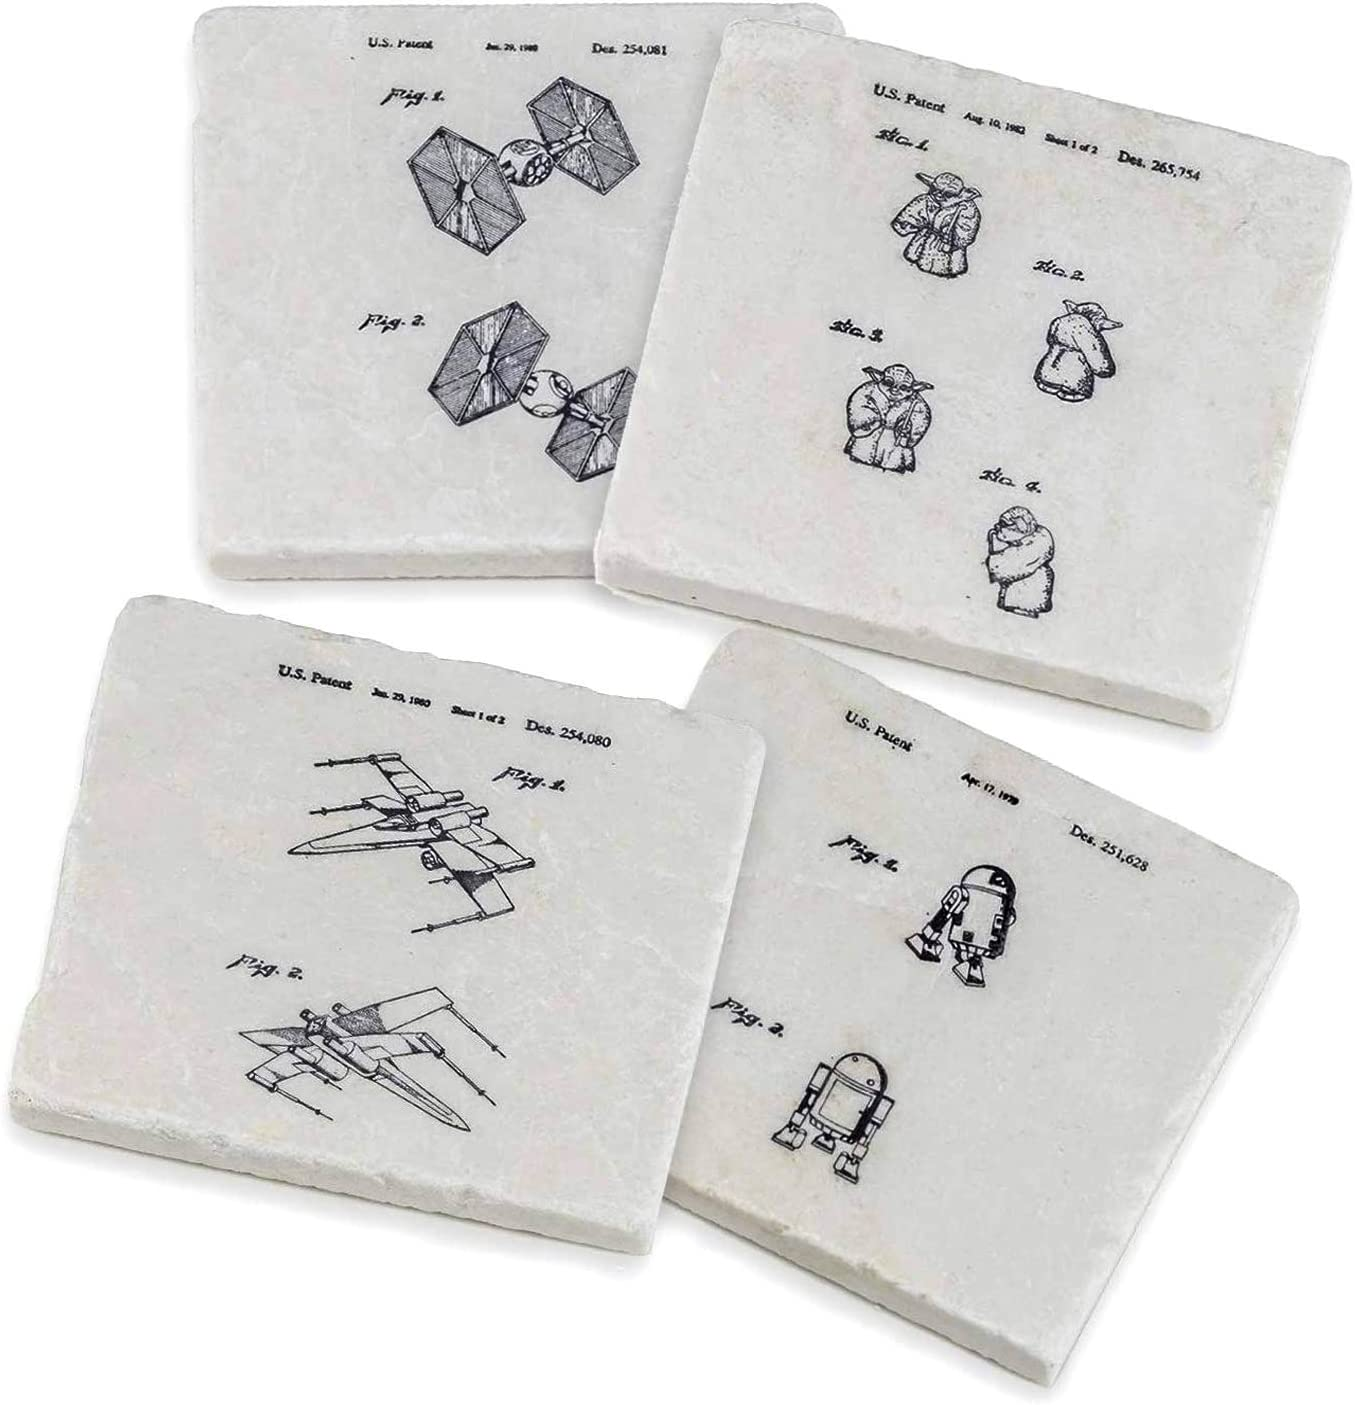 Star Wars Gifts - Home Decor Stone Coasters